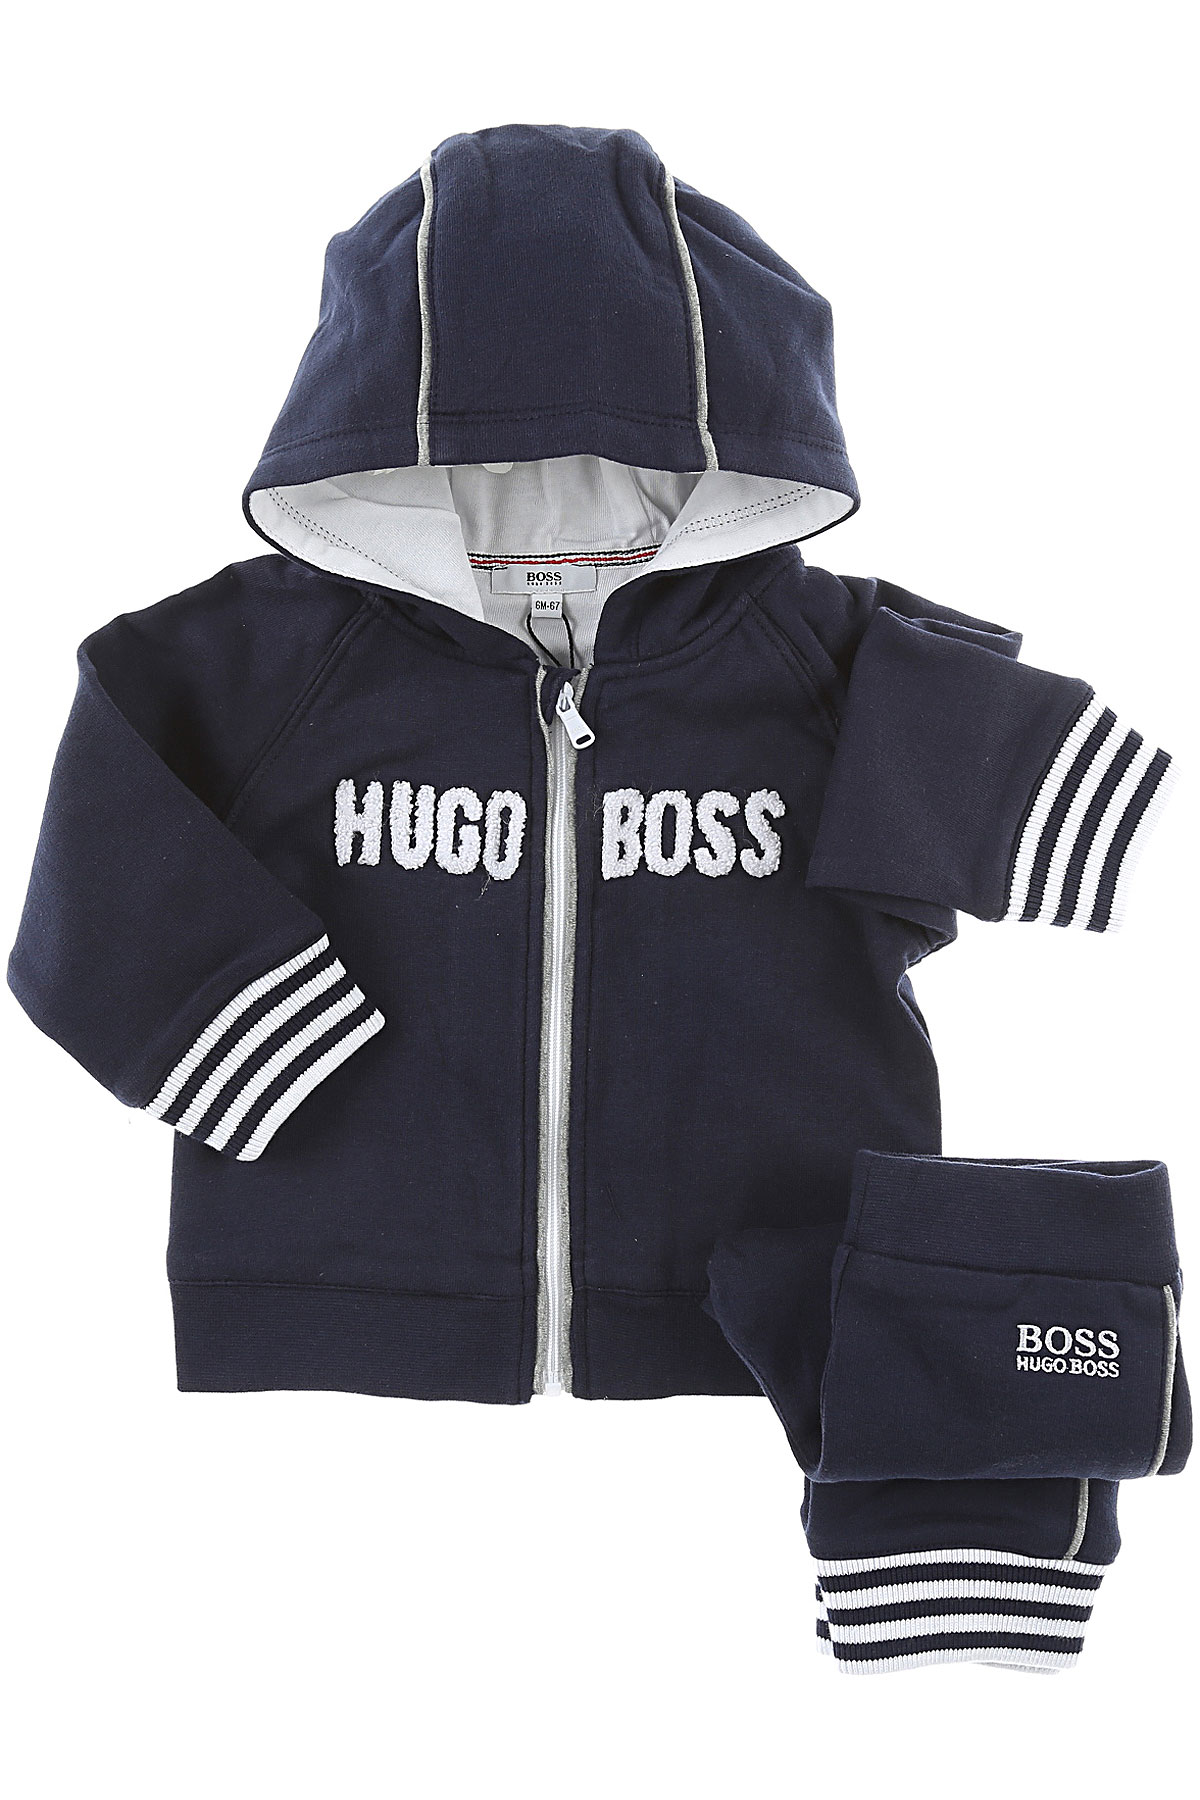 Image of Hugo Boss Baby Sets for Boys, Blue, Cotton, 2017, 18M 6M 9M